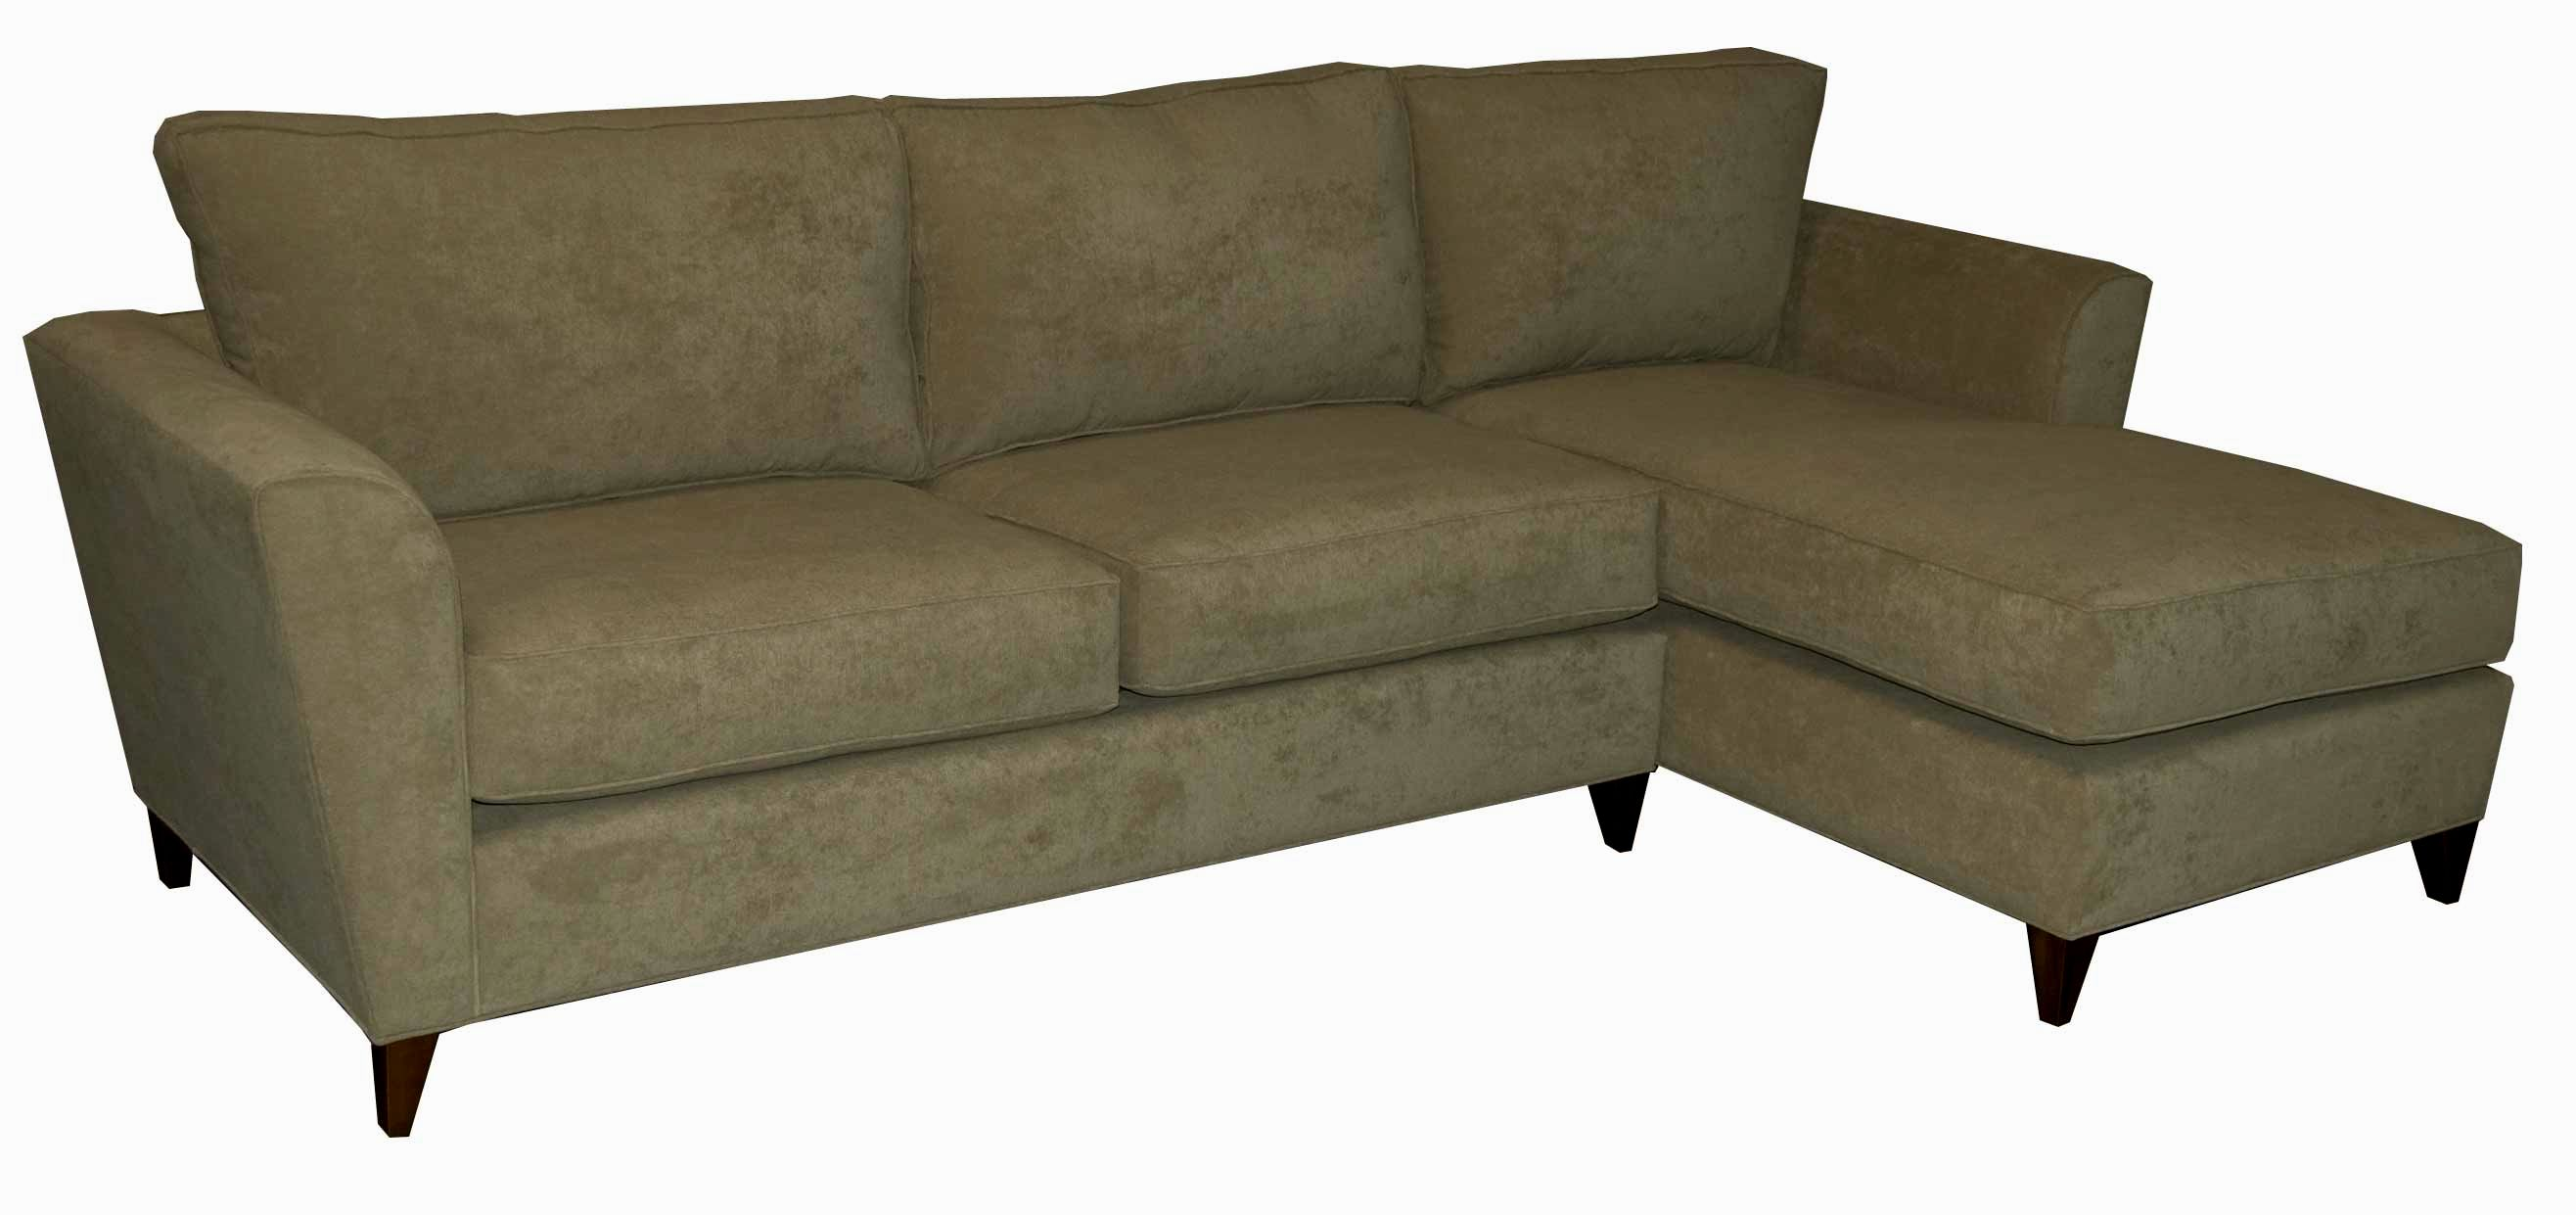 cute sectional sofa with recliner construction-Excellent Sectional sofa with Recliner Picture